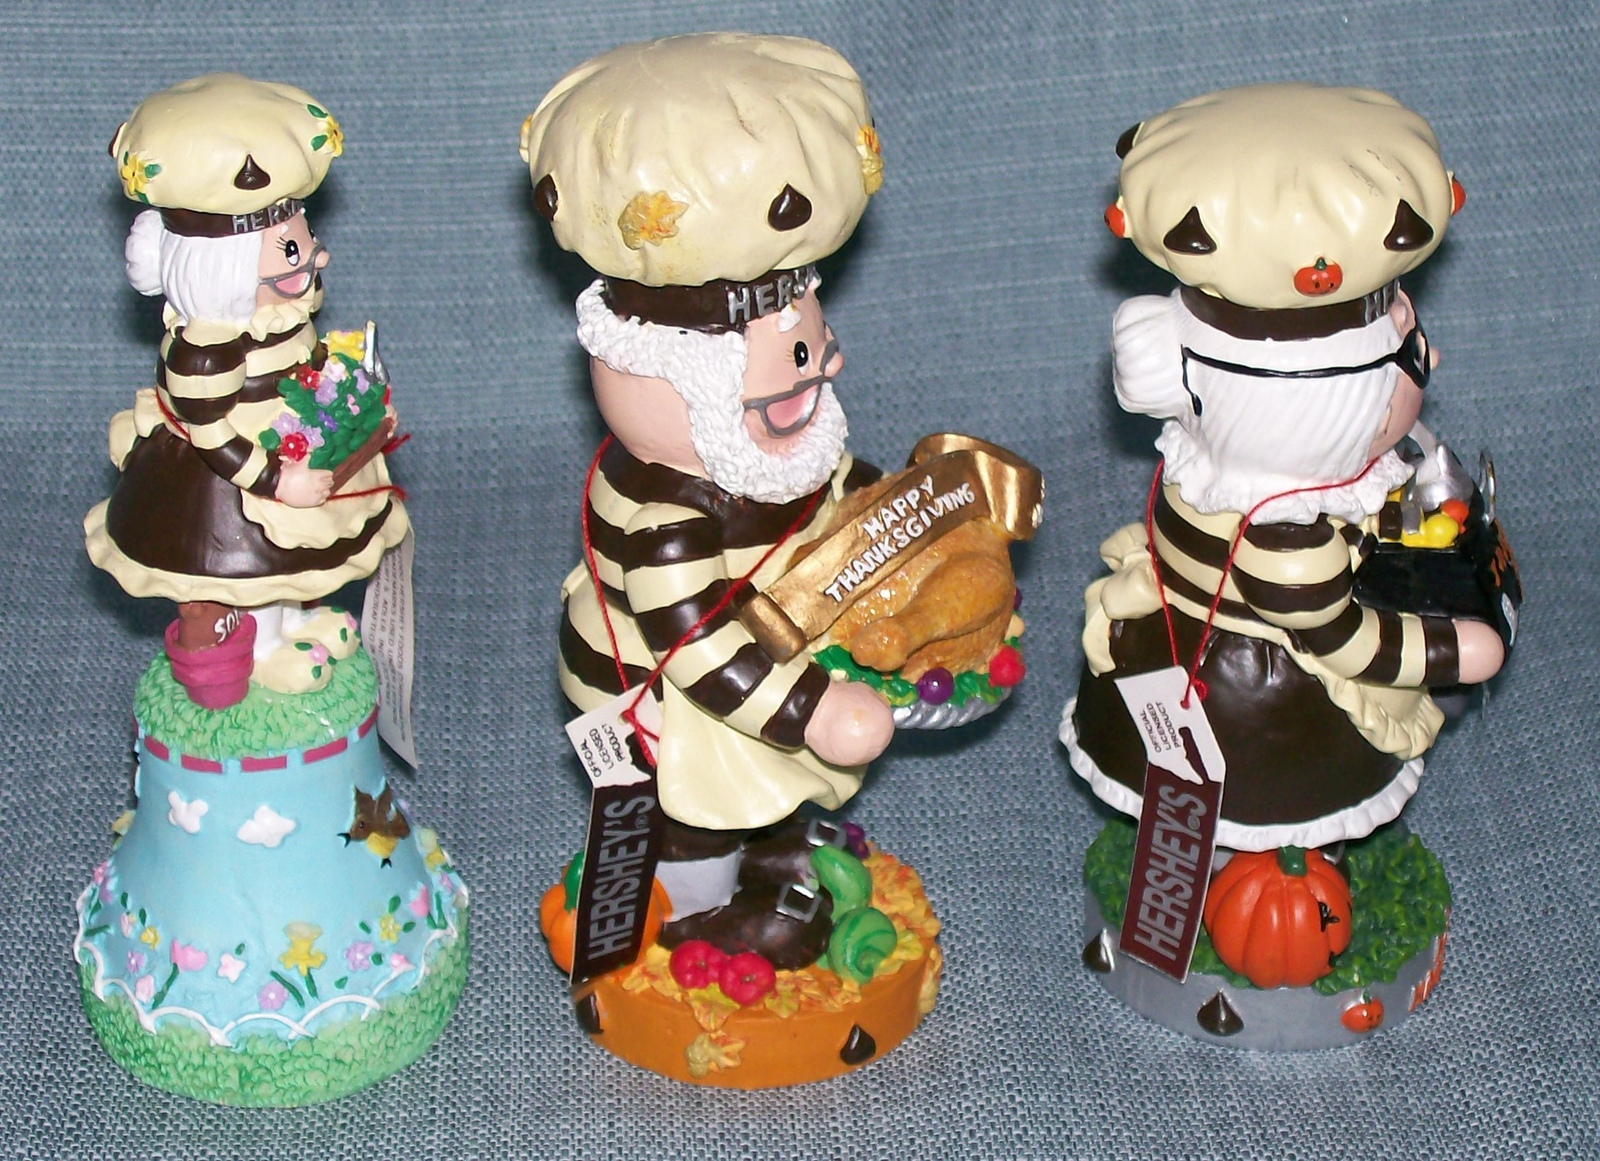 Hershey Collectibles-Spring Bell / Candy Dish, Thanksgiving, Halloween Figurines image 7